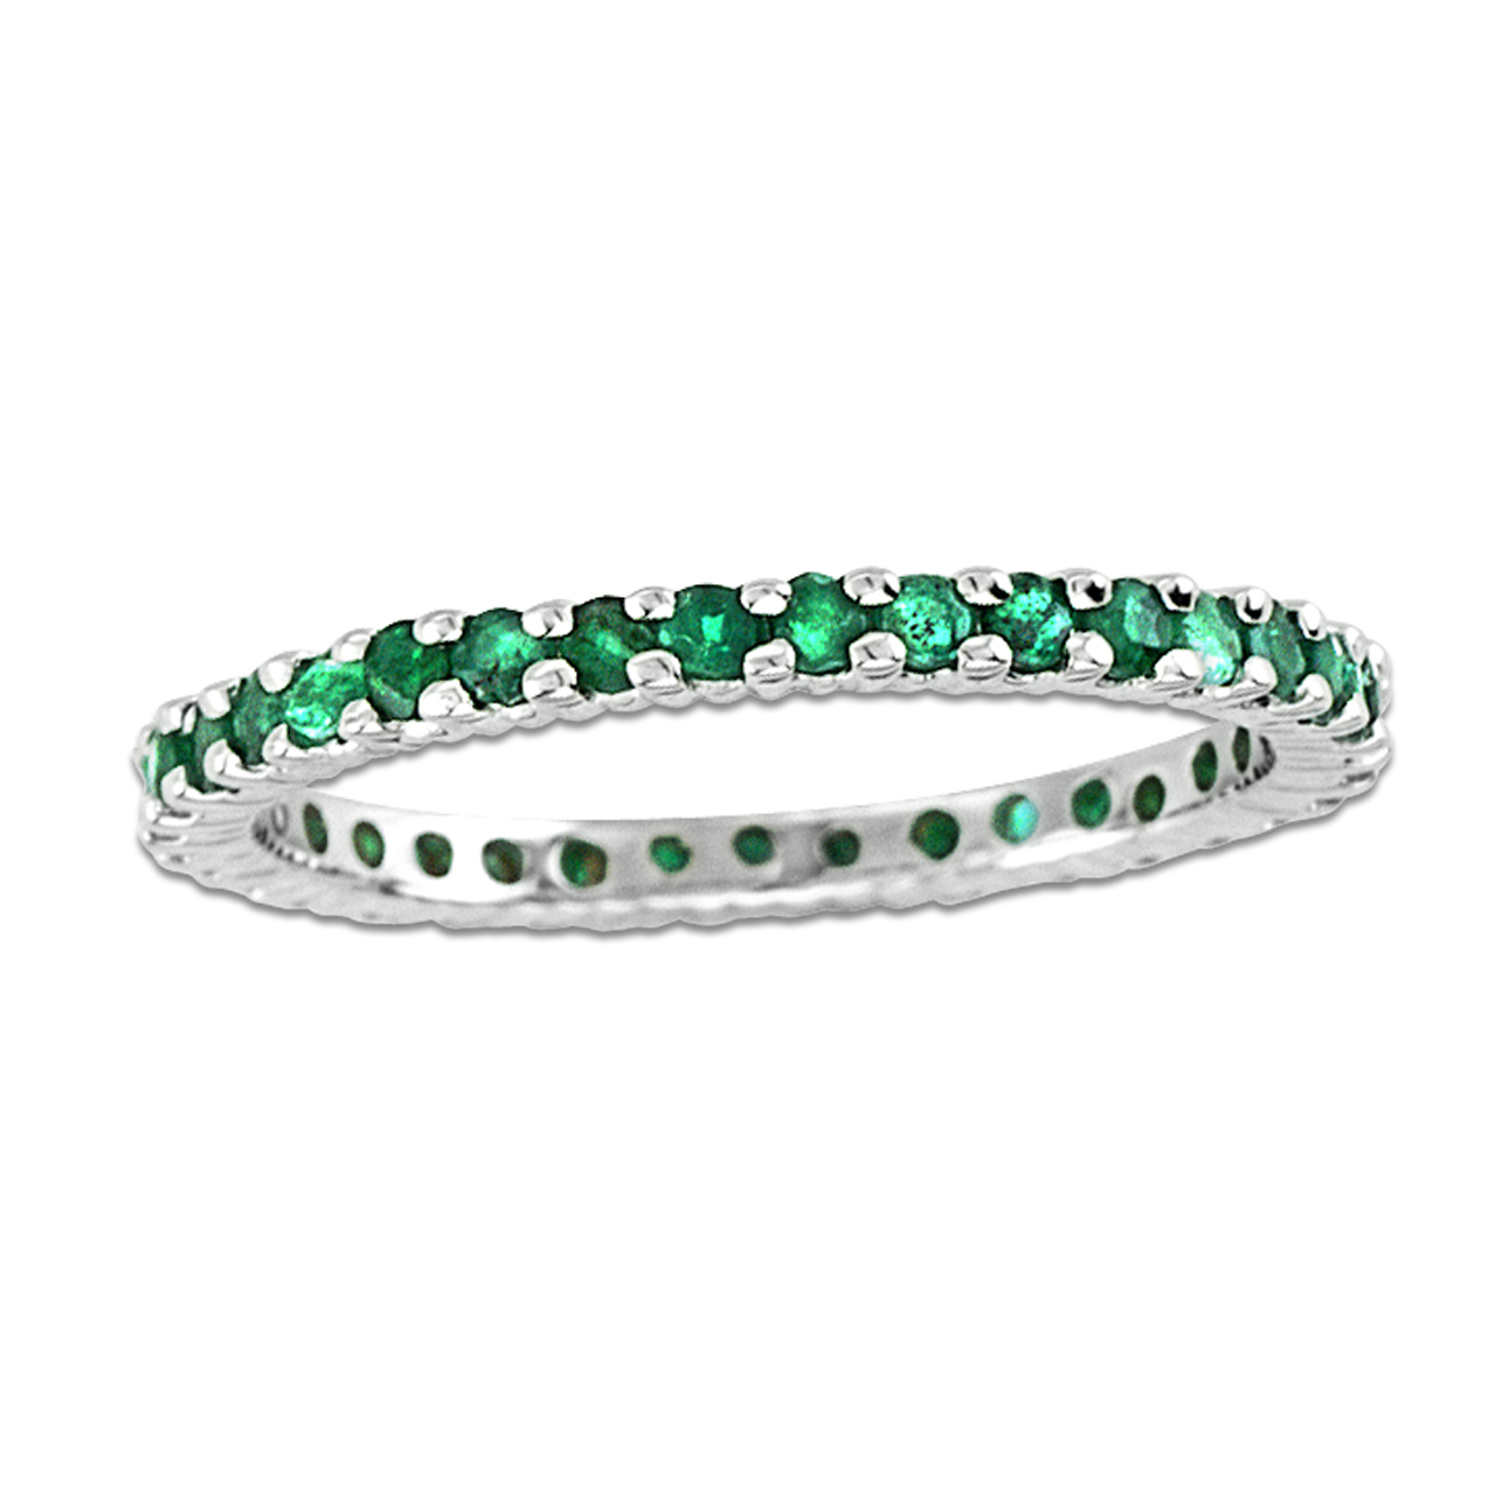 02a0fae329c View 14k Gold All Around Eternity Band with 0.75ct tw of Emerald